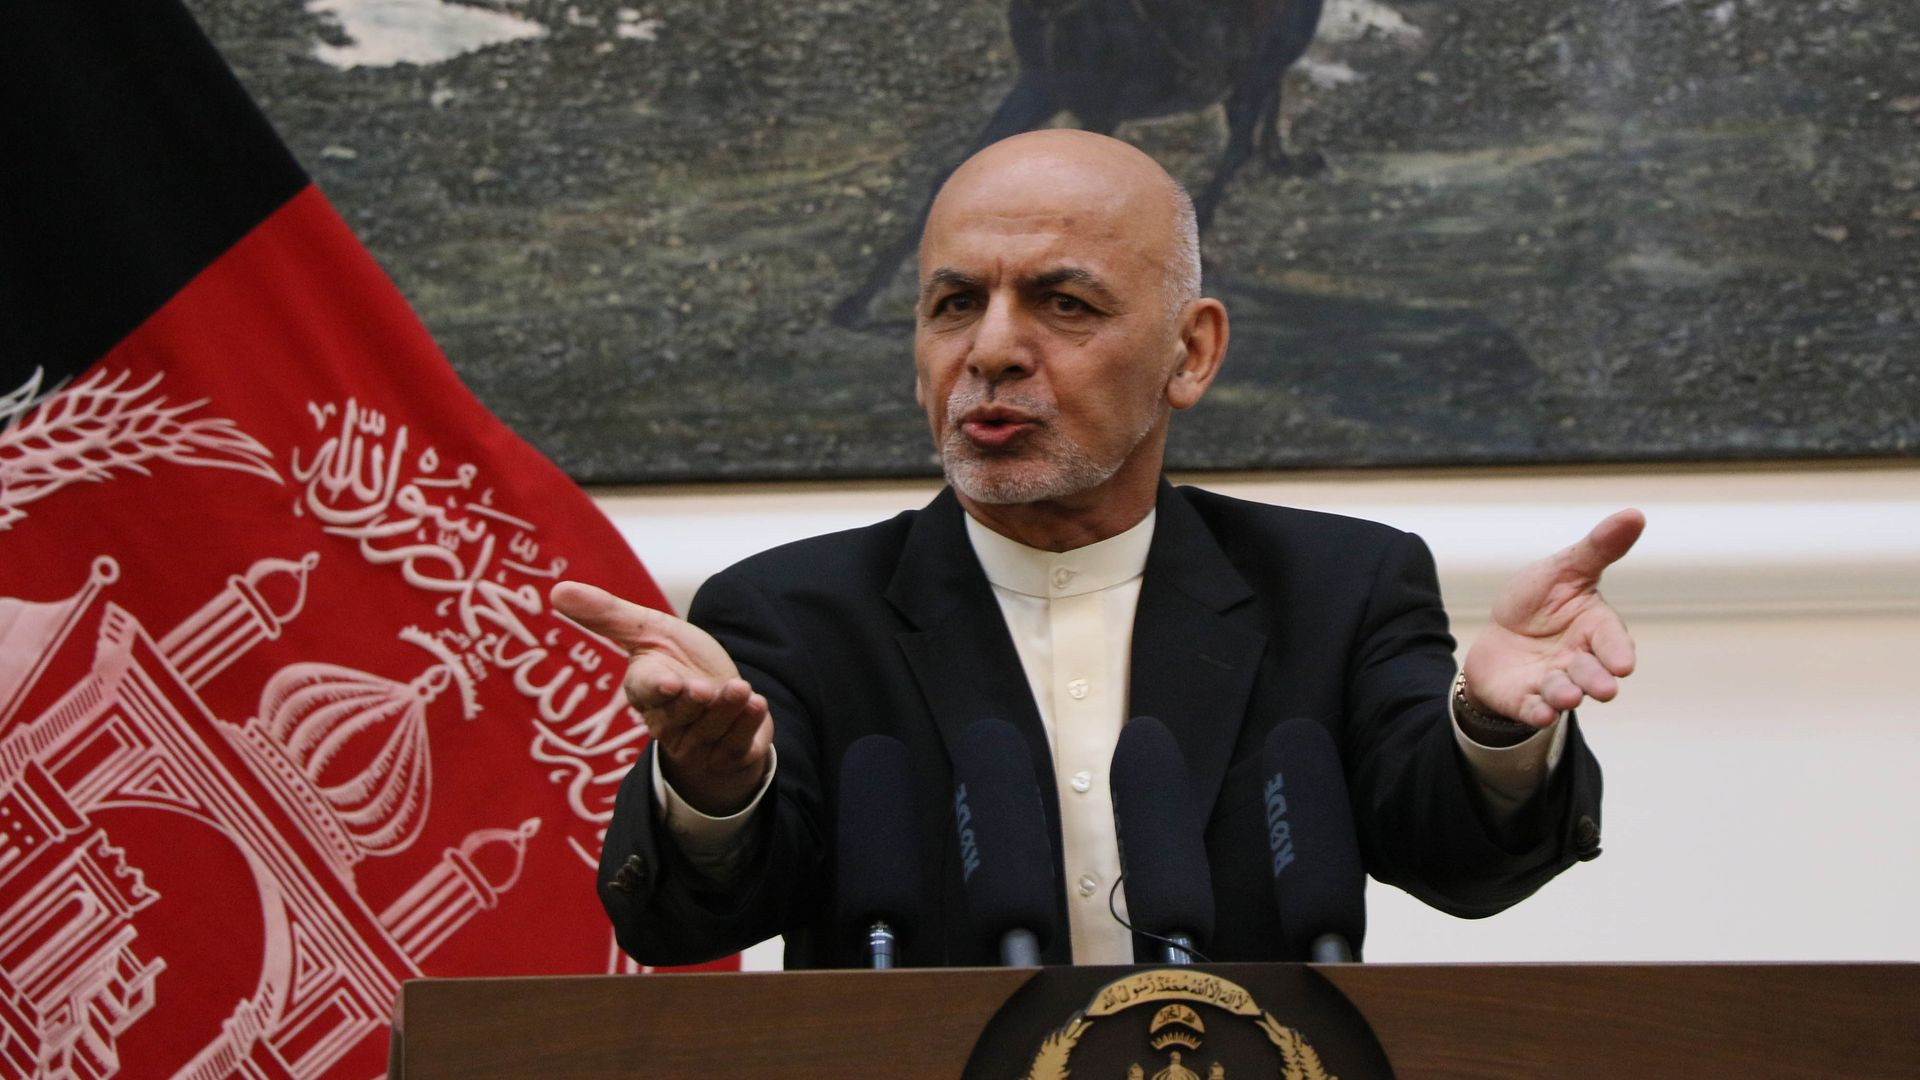 Afghan President Ashraf Ghani. Photo: Haroon Sabawoon/Anadolu Agency/Getty Images